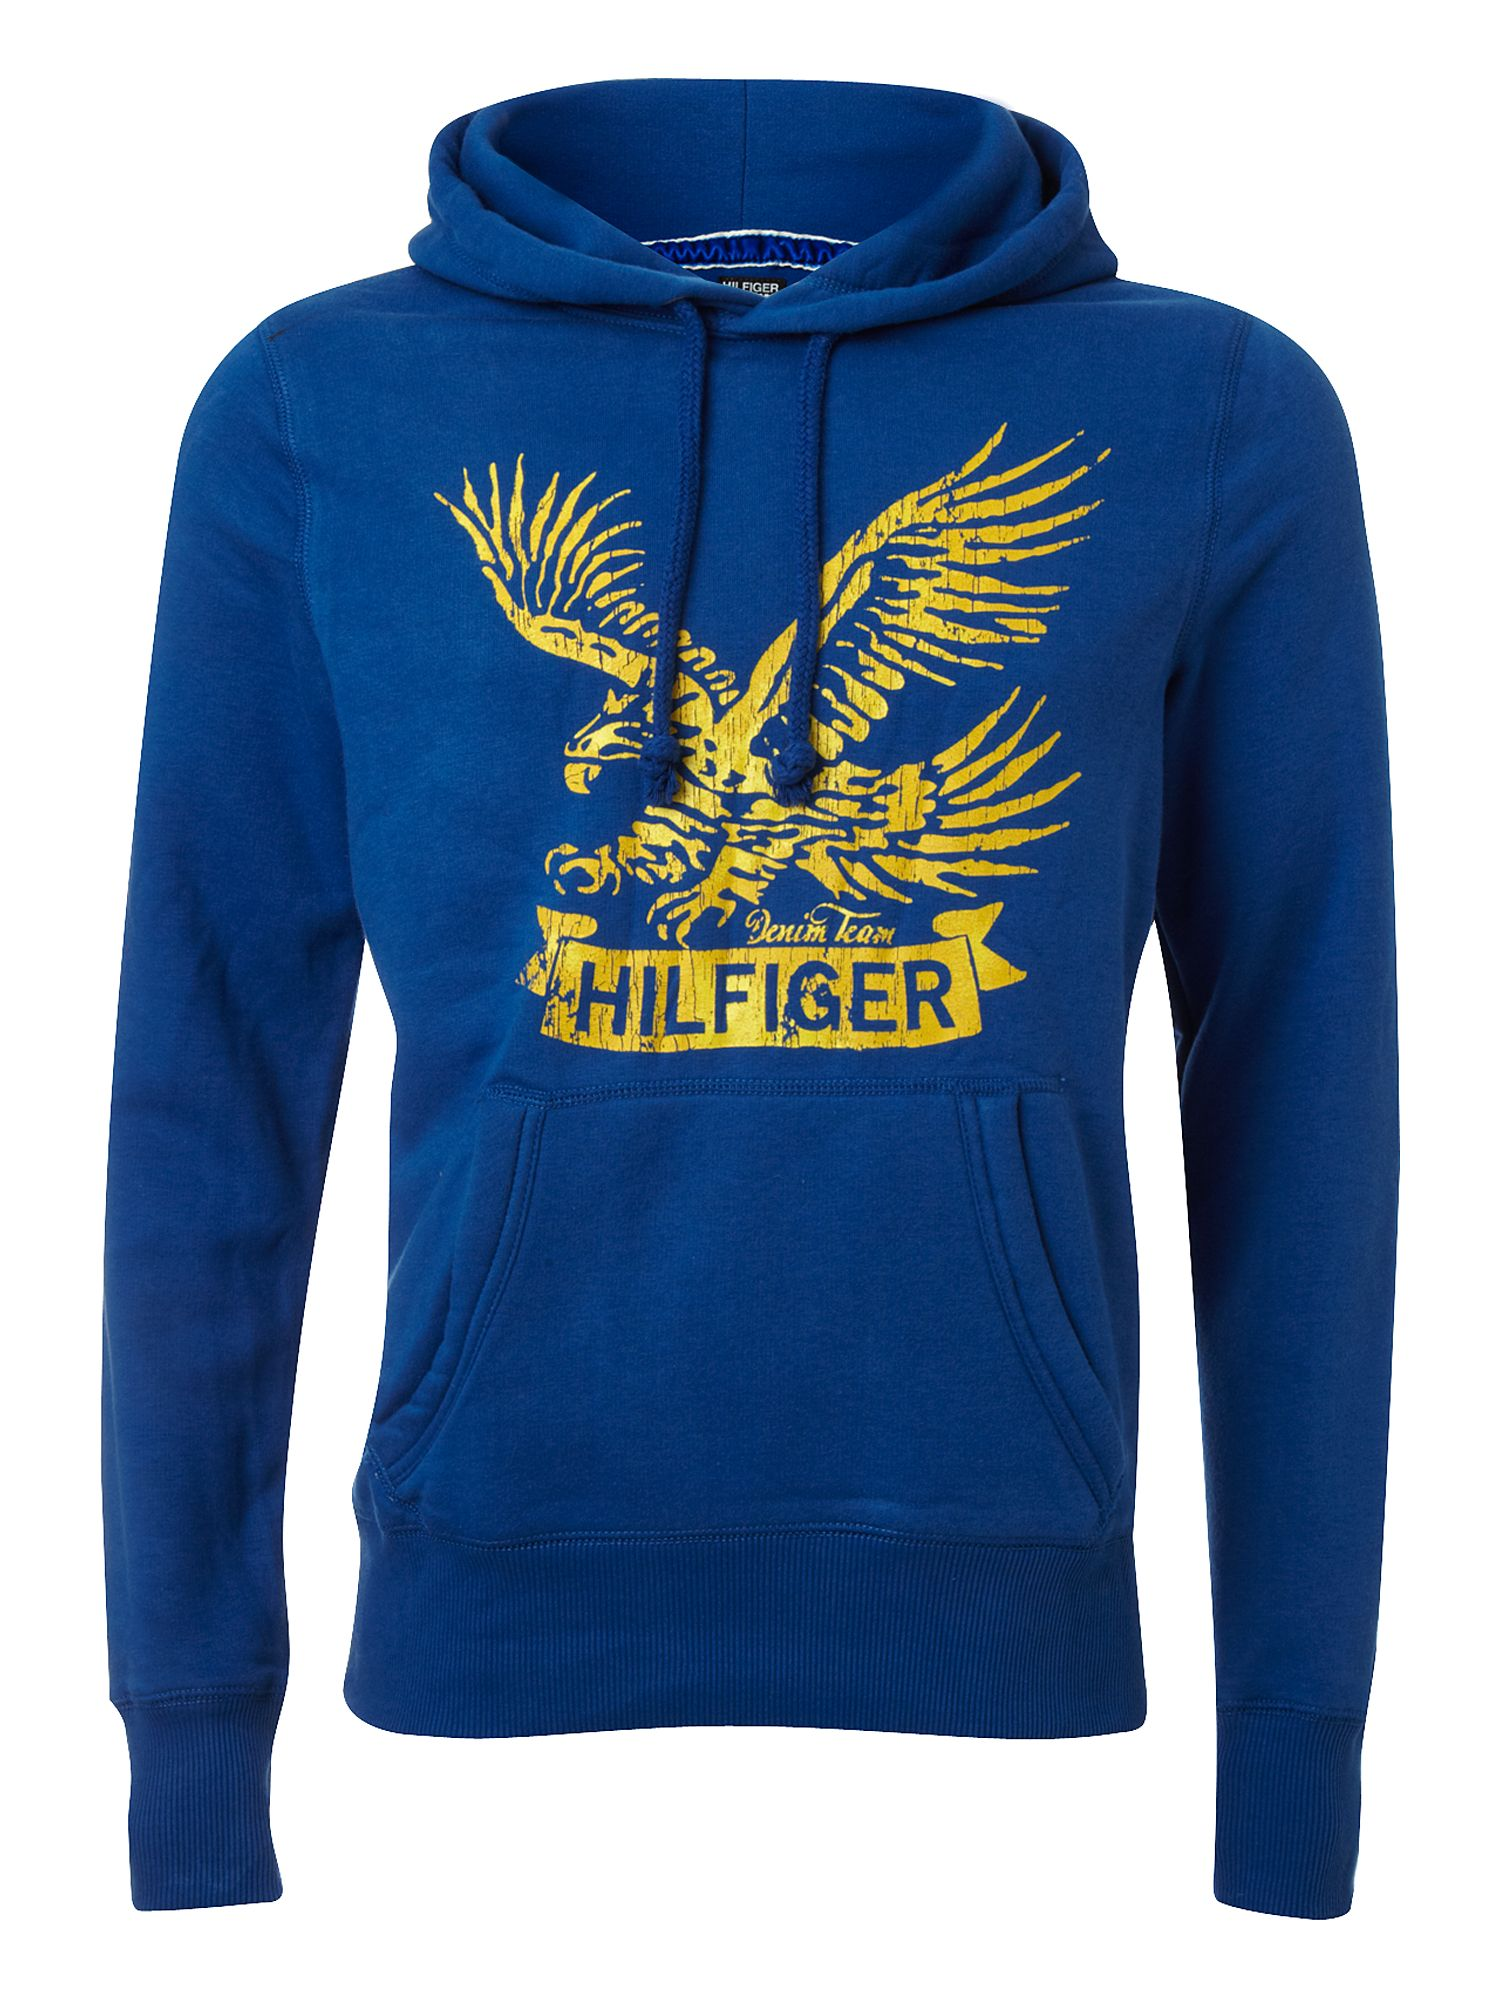 Tommy Hilfiger Ohio hooded top Dark Blue product image